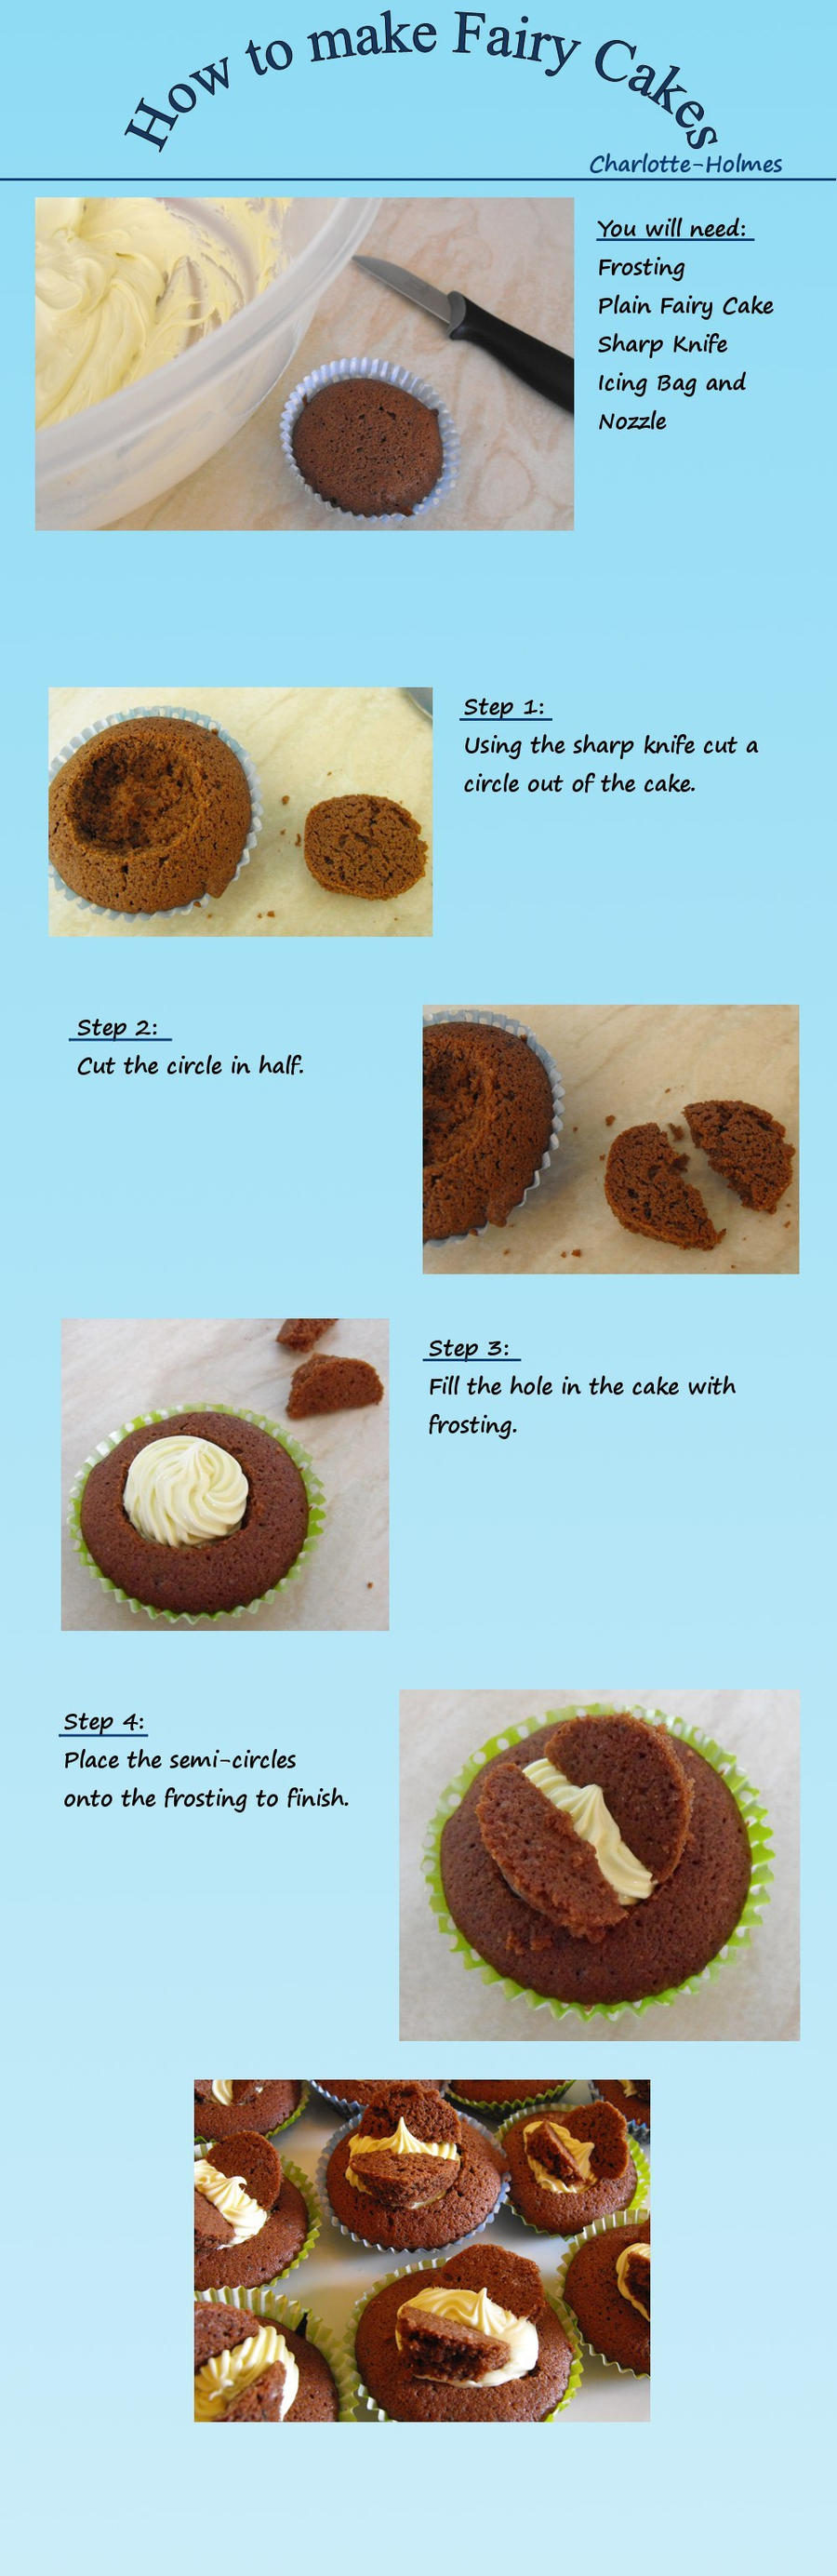 Butterfly Cake Tutorial by Lotte-Holmes